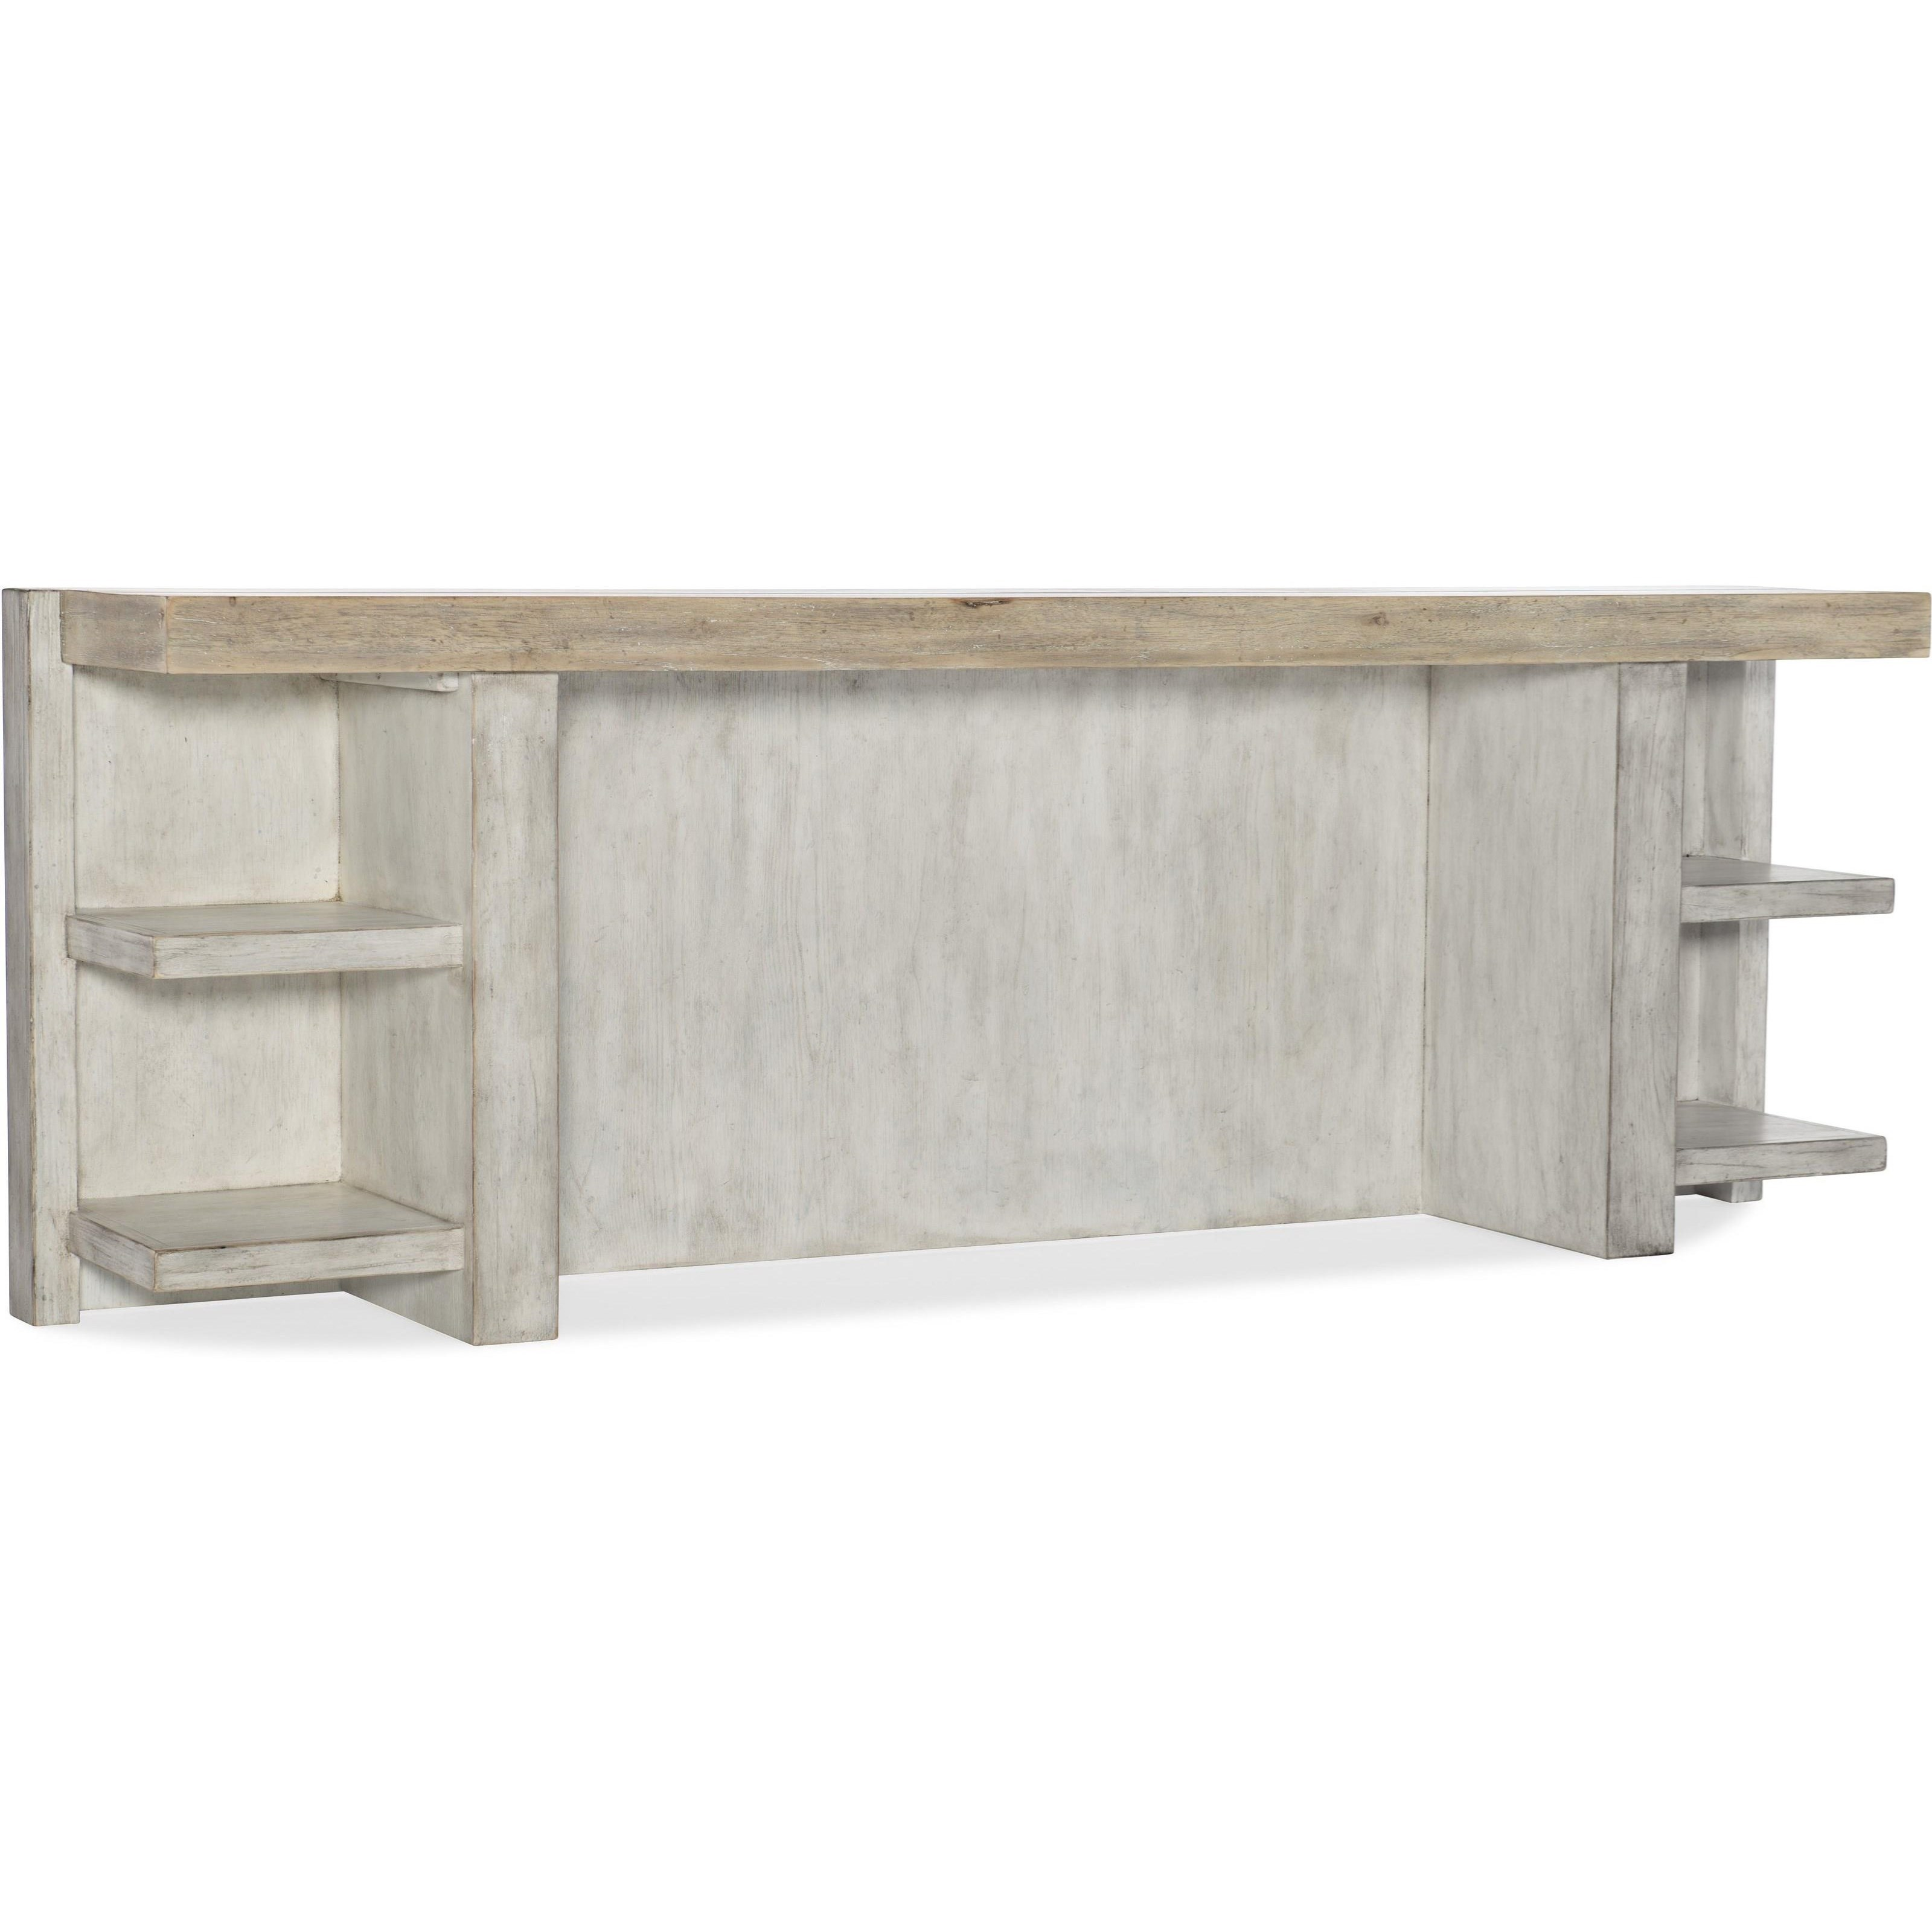 American Life-Amani Console Table by Hooker Furniture at Alison Craig Home Furnishings